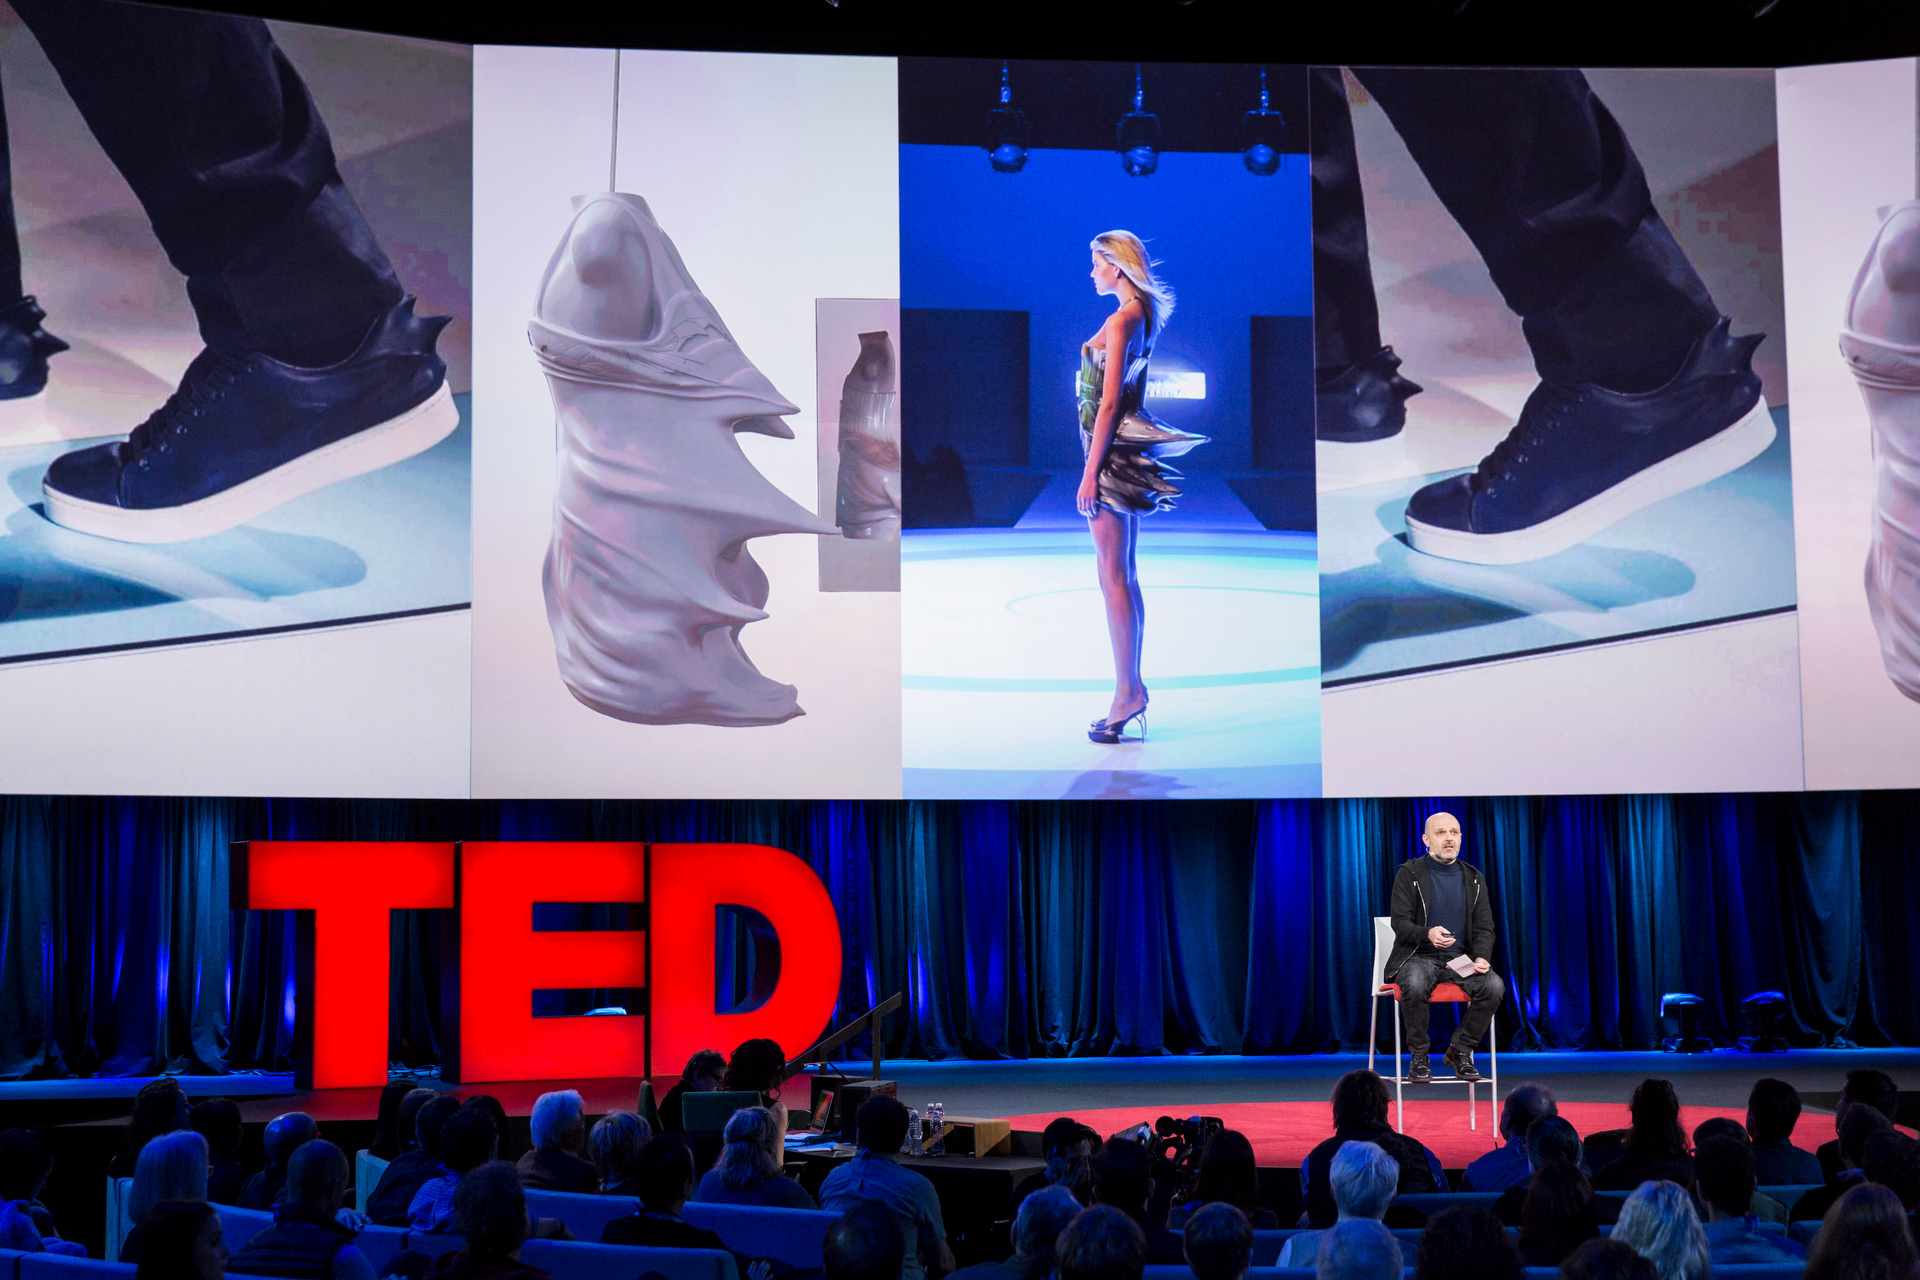 In Session 11, fashion designer Hussein Chalayan shared his unusual take on fashion. He shoed how a table can become a skirt and how this he makes a motif of speed. Photo: Bret Hartman/TED http://blog.ted.com/passion-and-consequence-the-inspiring-talks-in-session-11-of-ted2015/